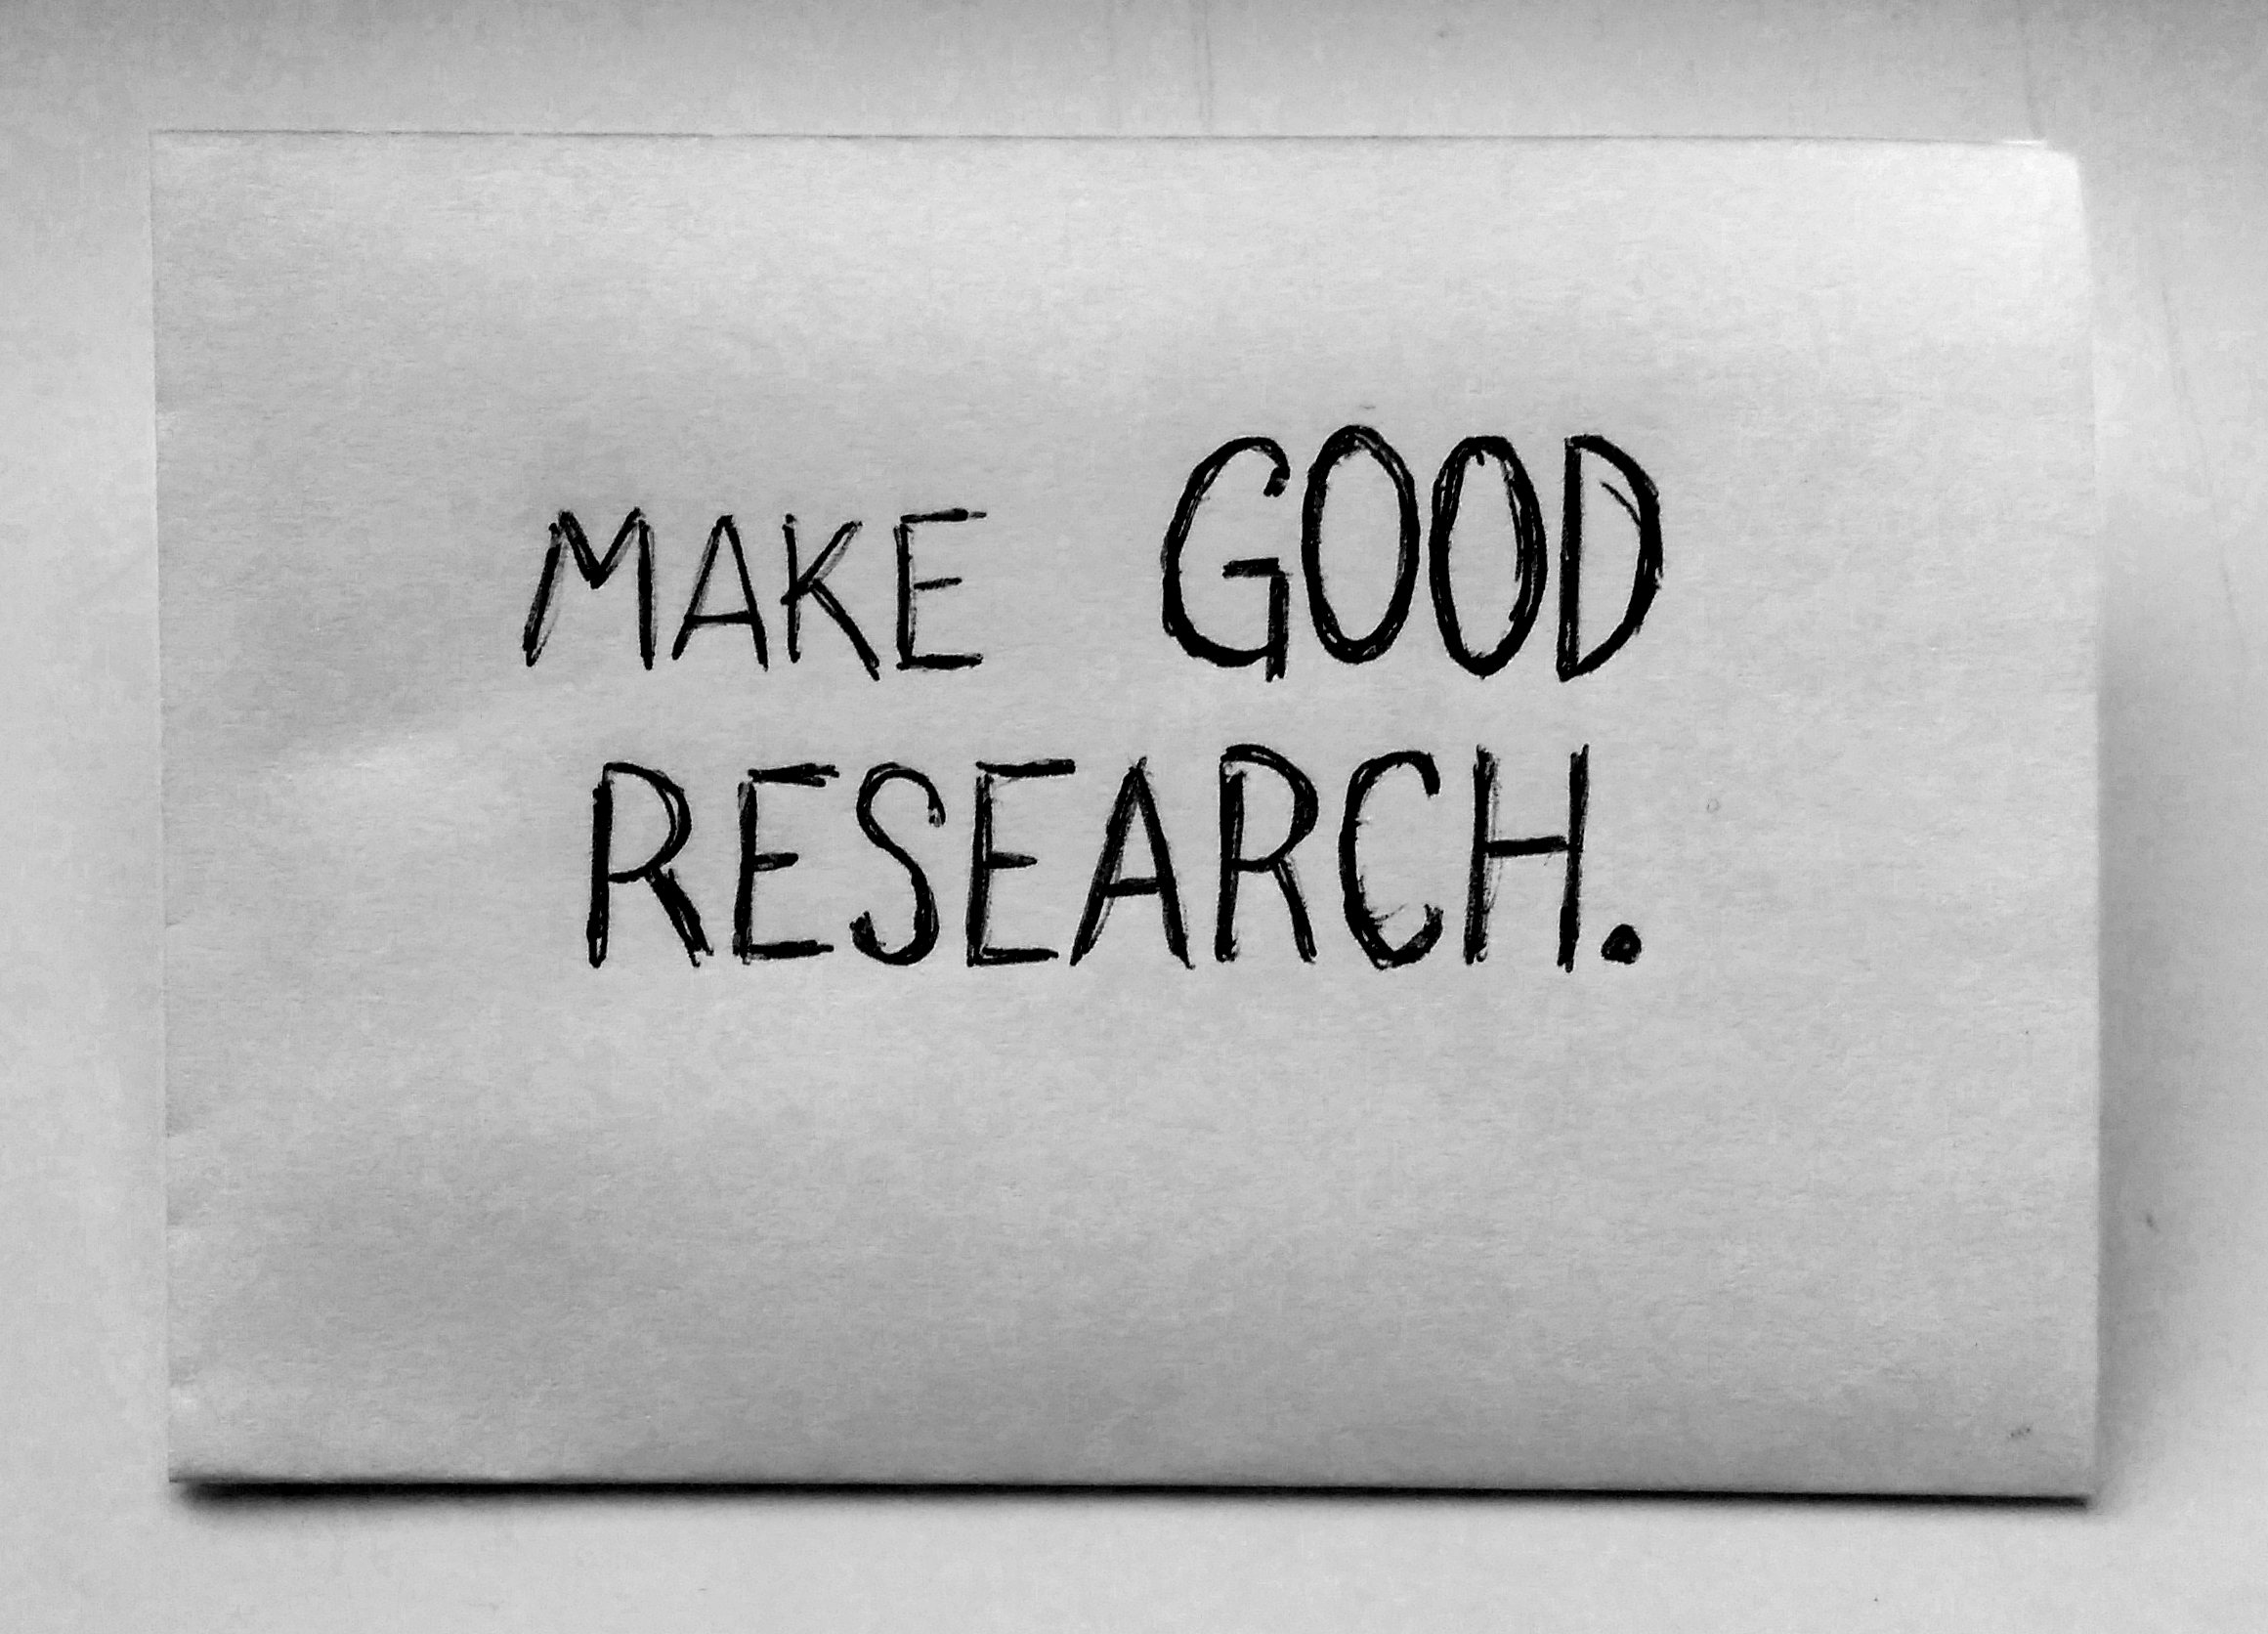 Make good research.